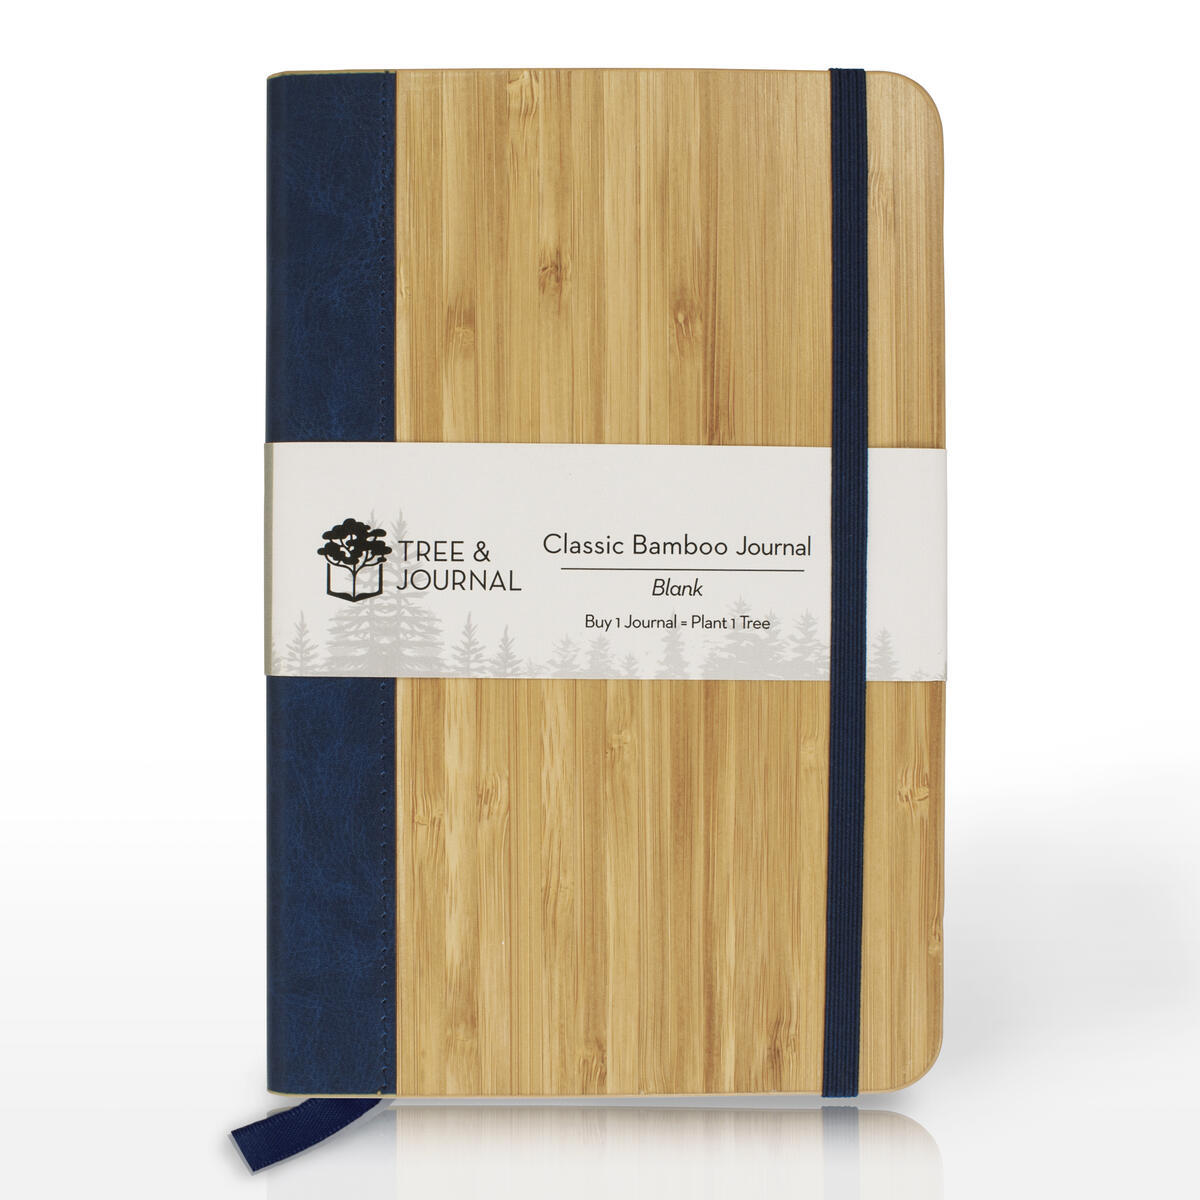 Eco Friendly Journal, Handmade College Ruled Notebook (5x8 in) with Natural Wood Cover & Fountain Pen Friendly Paper. FSC Certified & Zero Waste.